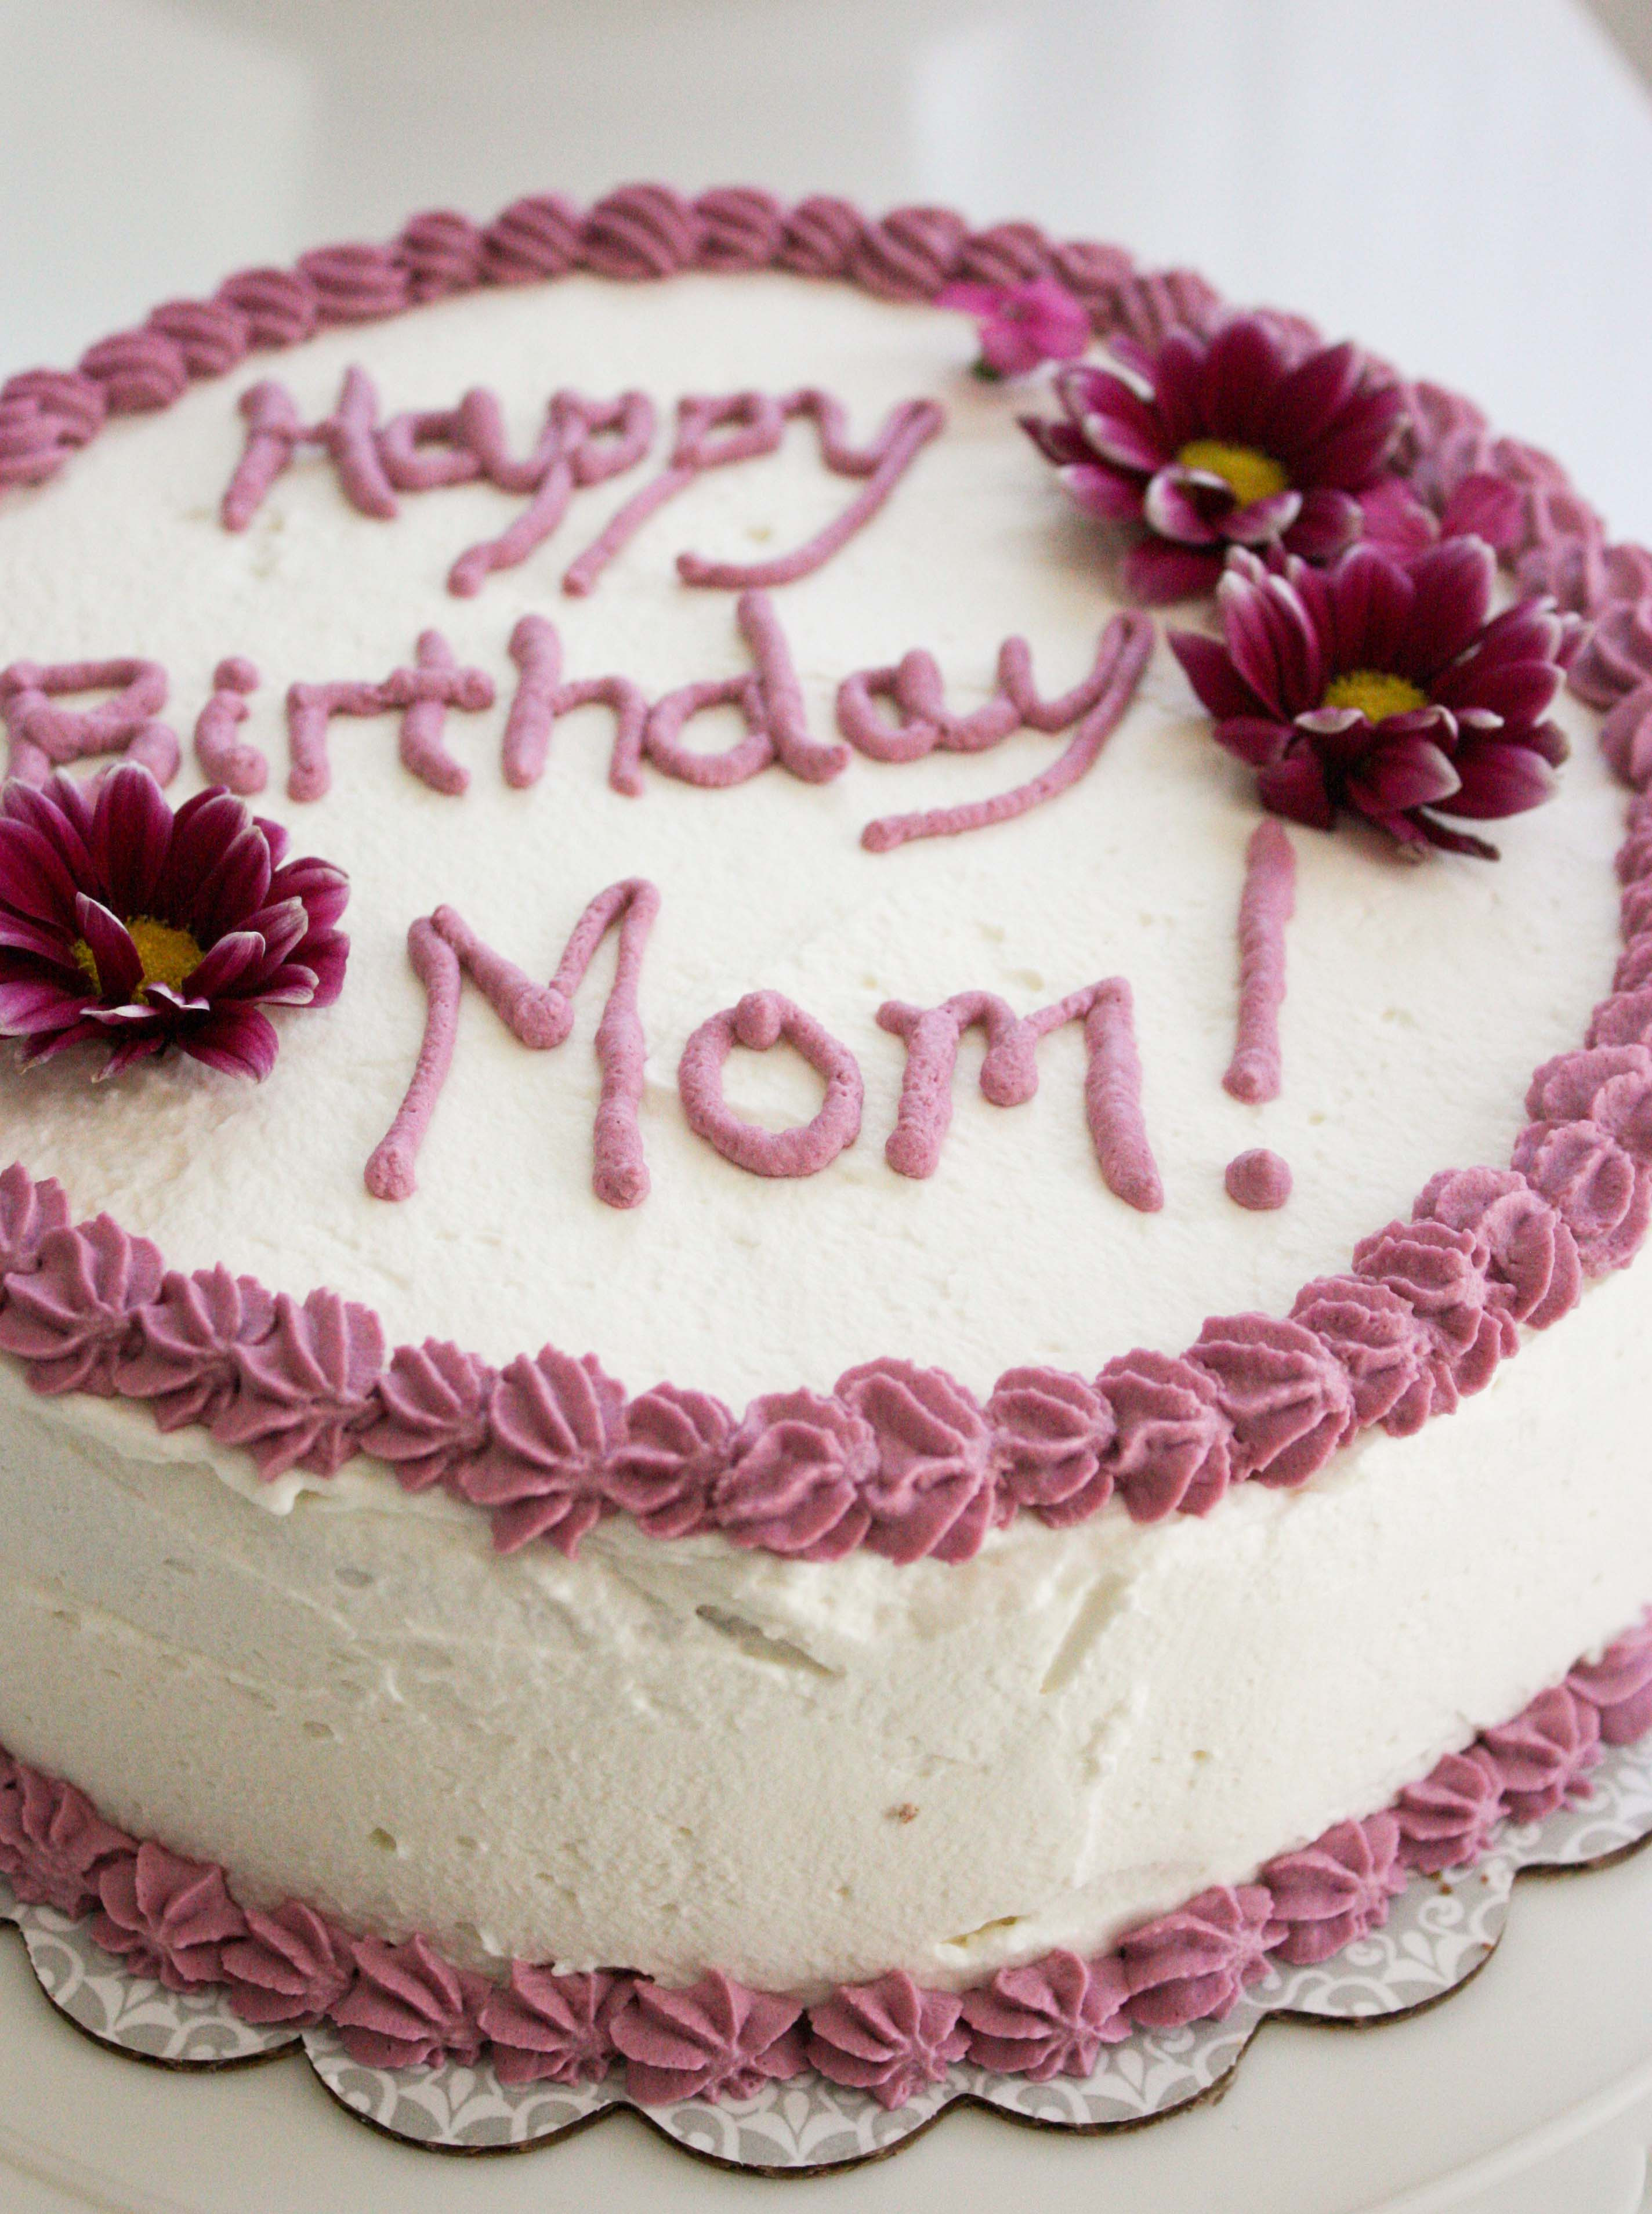 Best ideas about Happy Birthday Mom Cake . Save or Pin Banana Birthday Cake for My Mom – Foodologie Now.